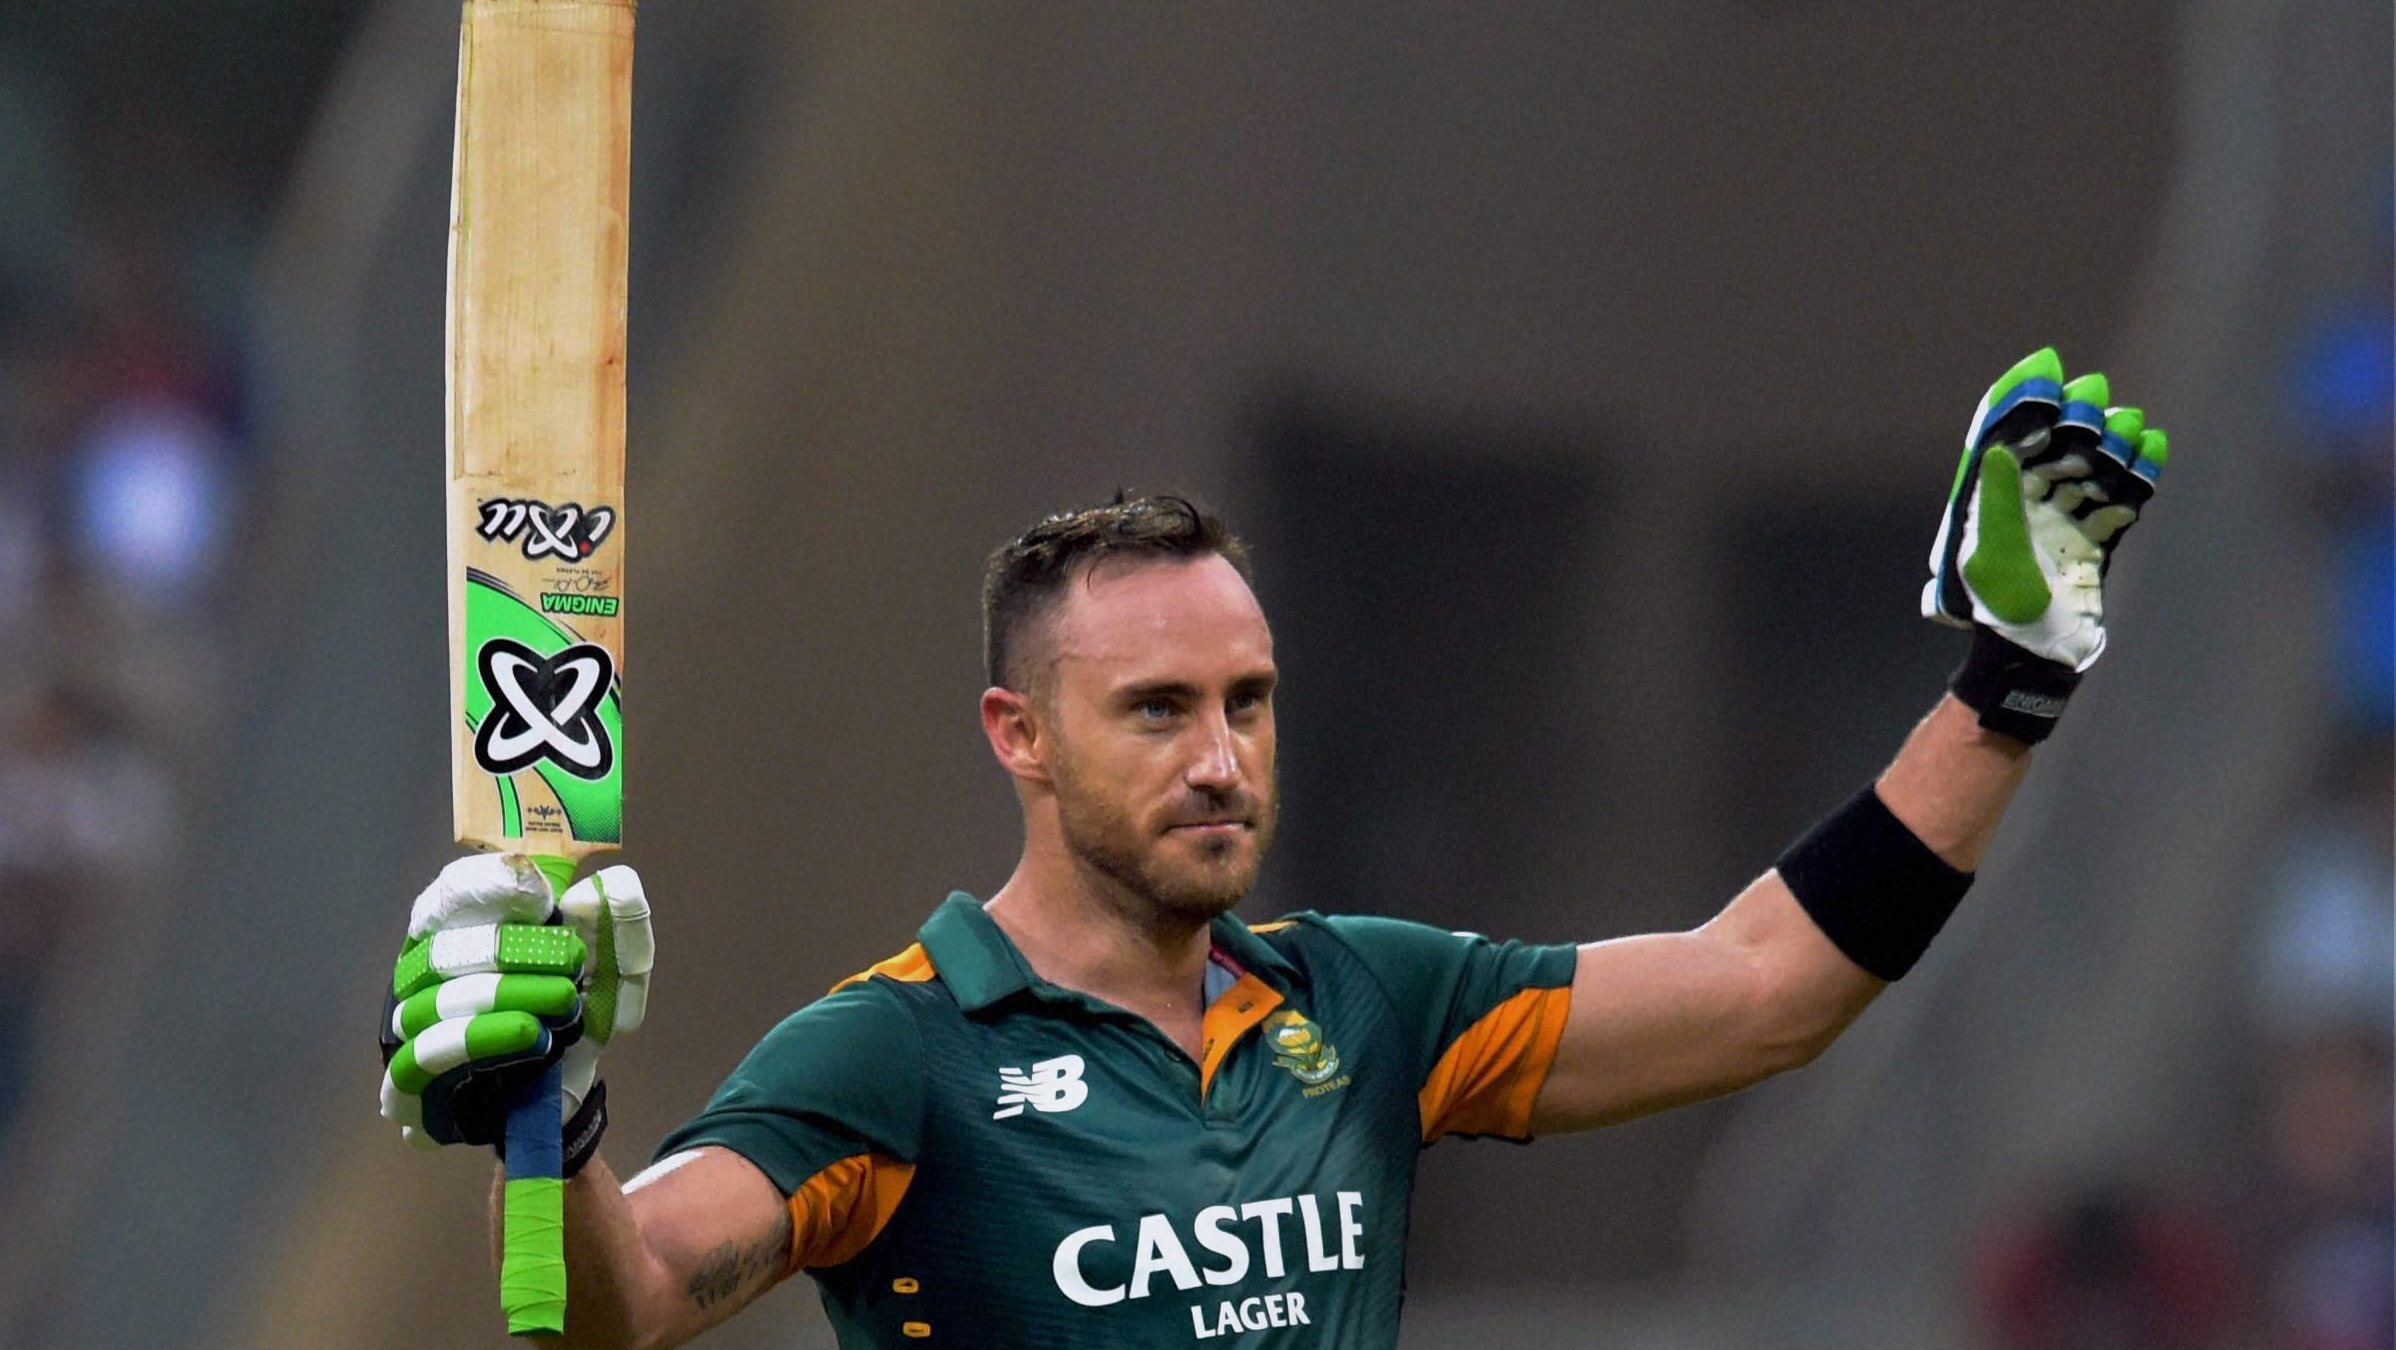 Video: Faf du Plessis' hundred was best of the three, says ... Faf Du Plessis